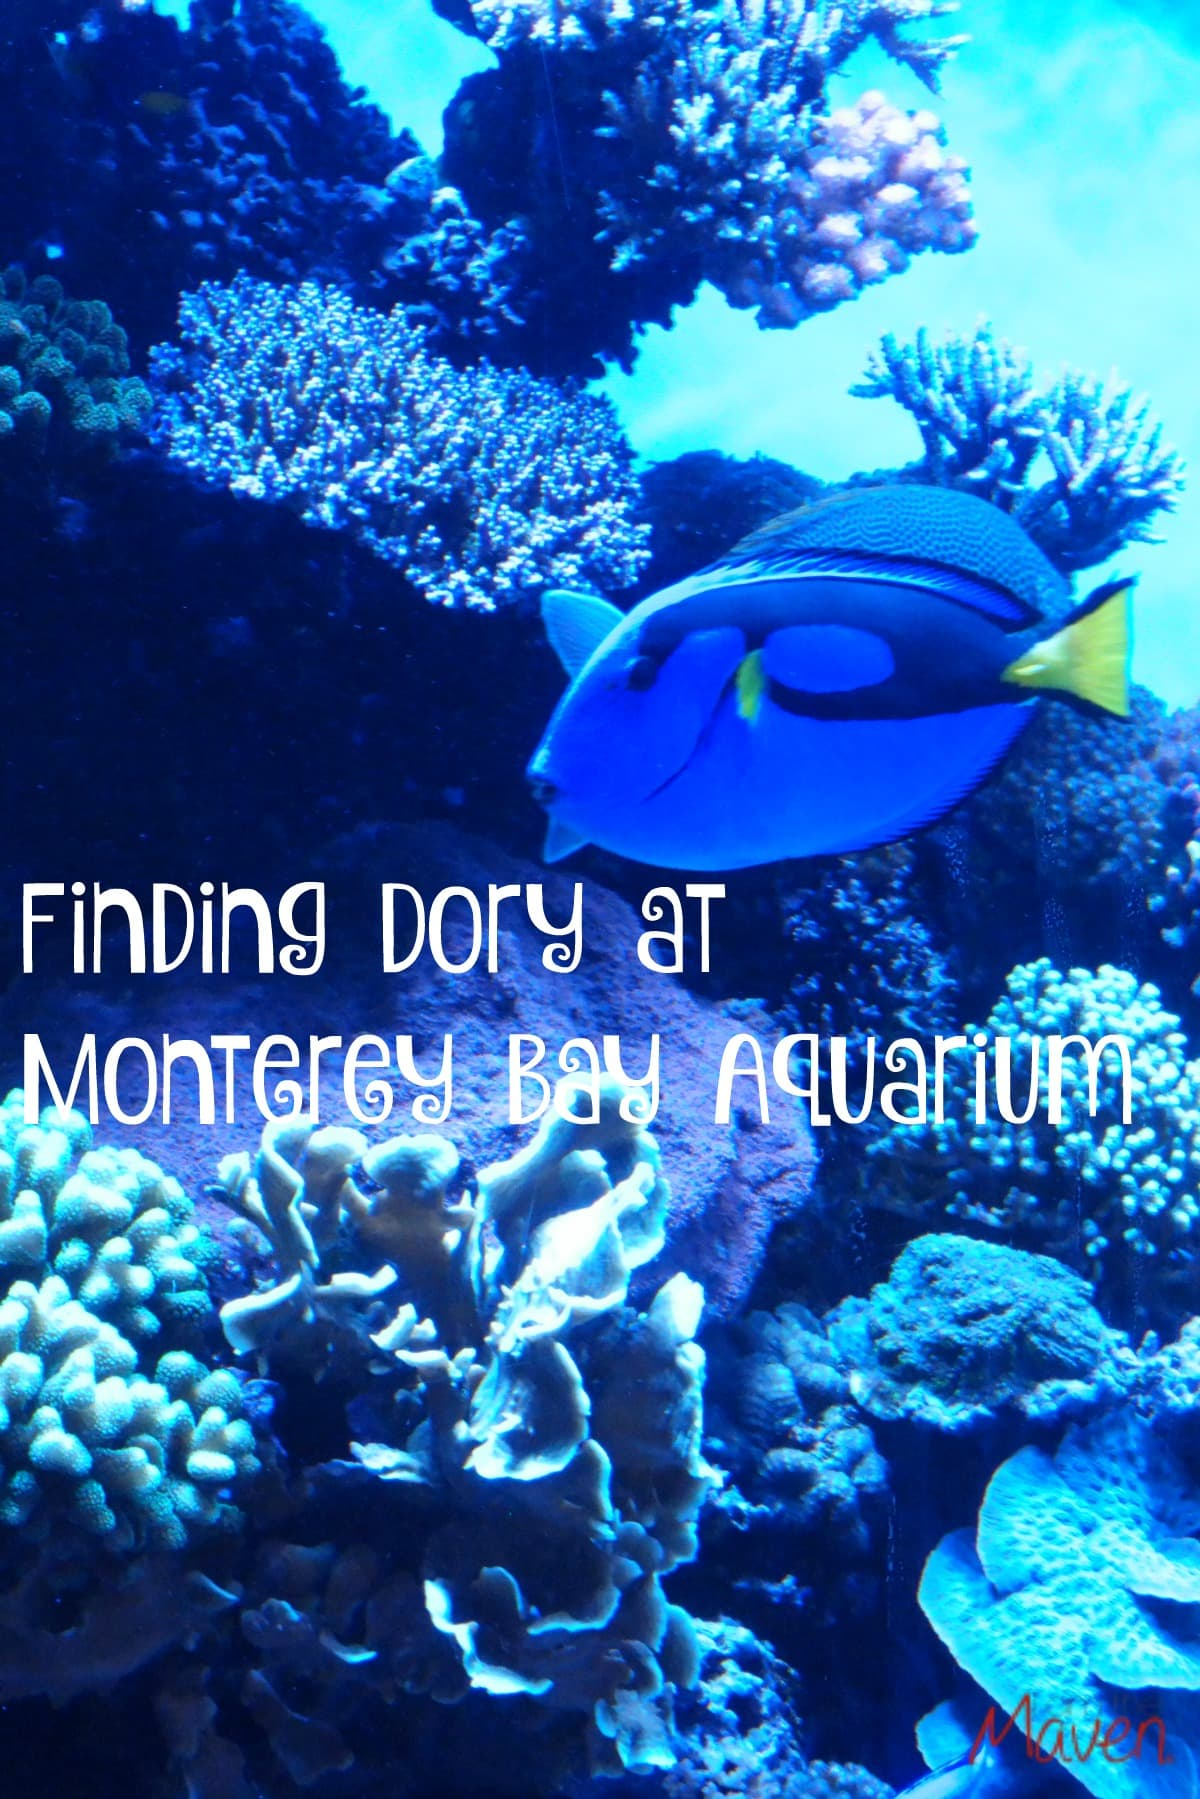 Finding Dory at Monterey Bay Aquarium #FindingDory #HaveYouSeenHer #FindingDoryEvent